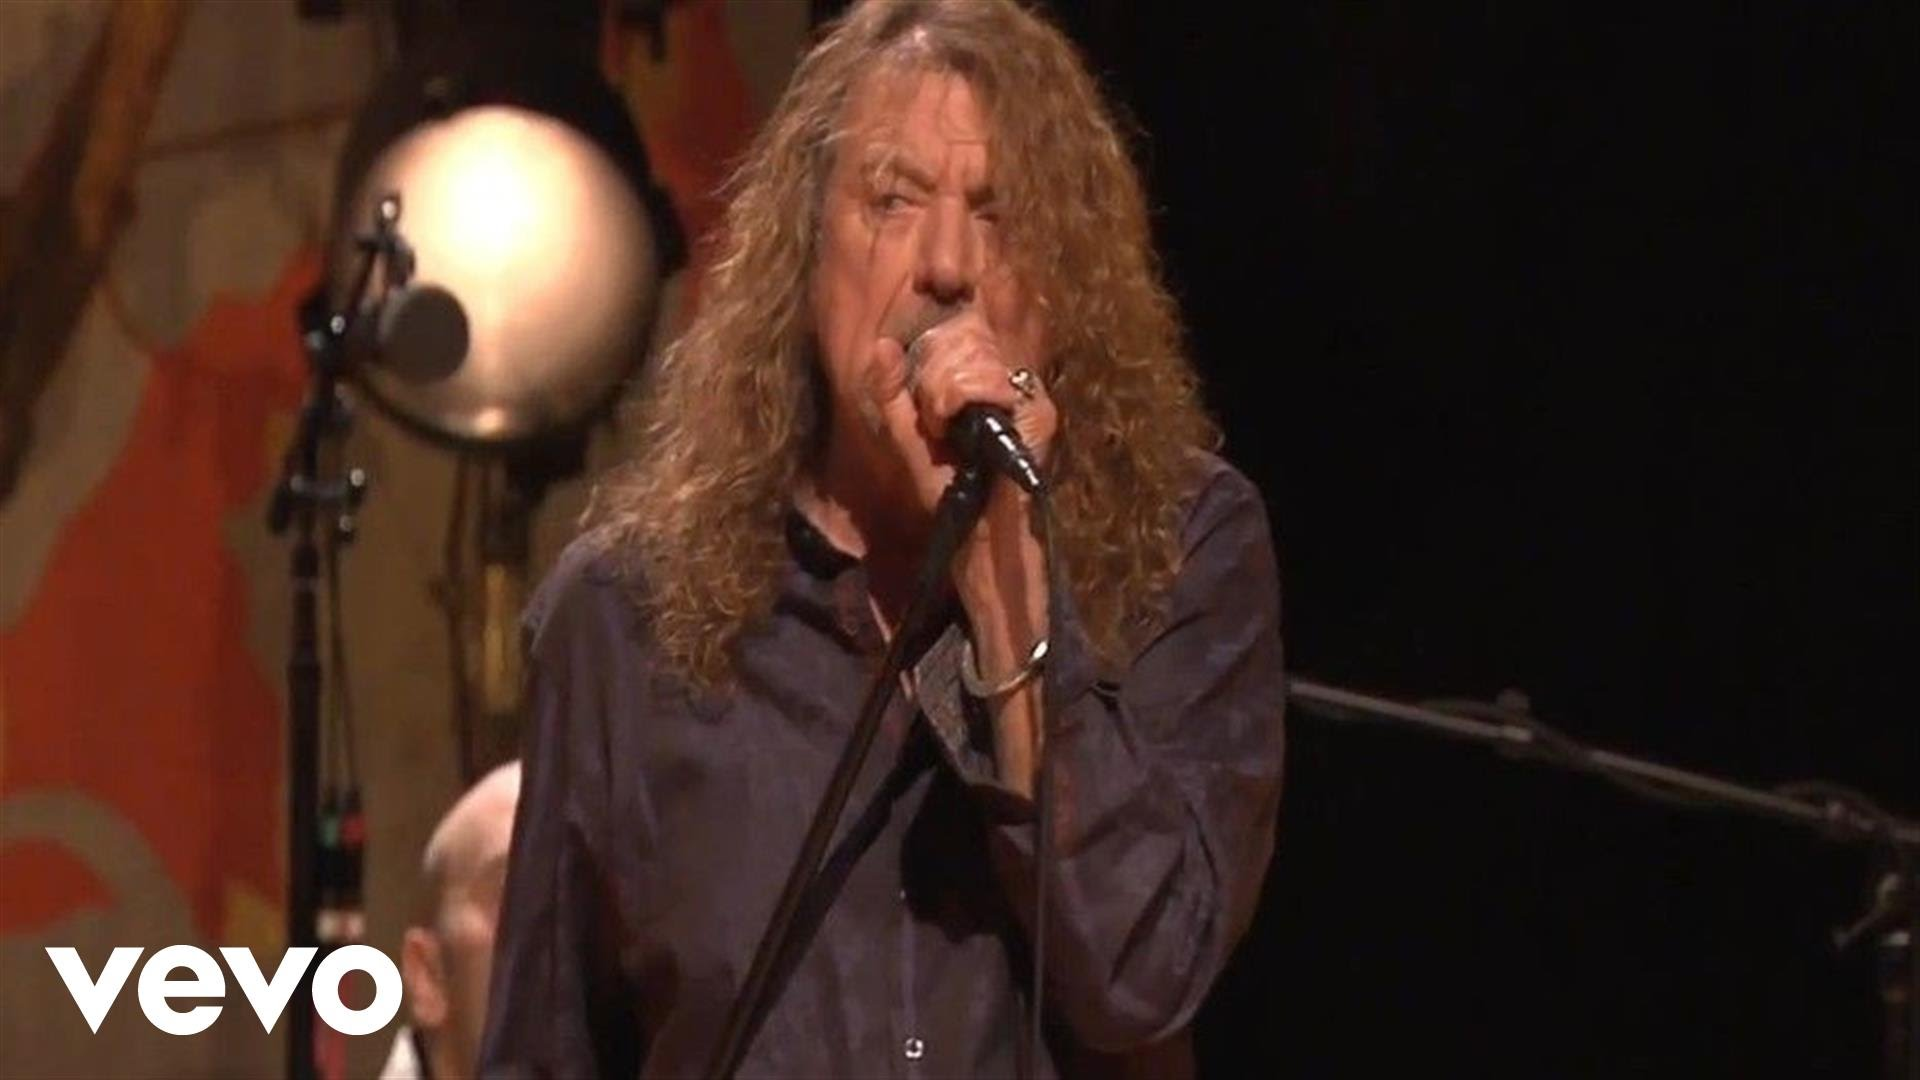 Robert Plant – House Of Cards (Live From The Artists Den)